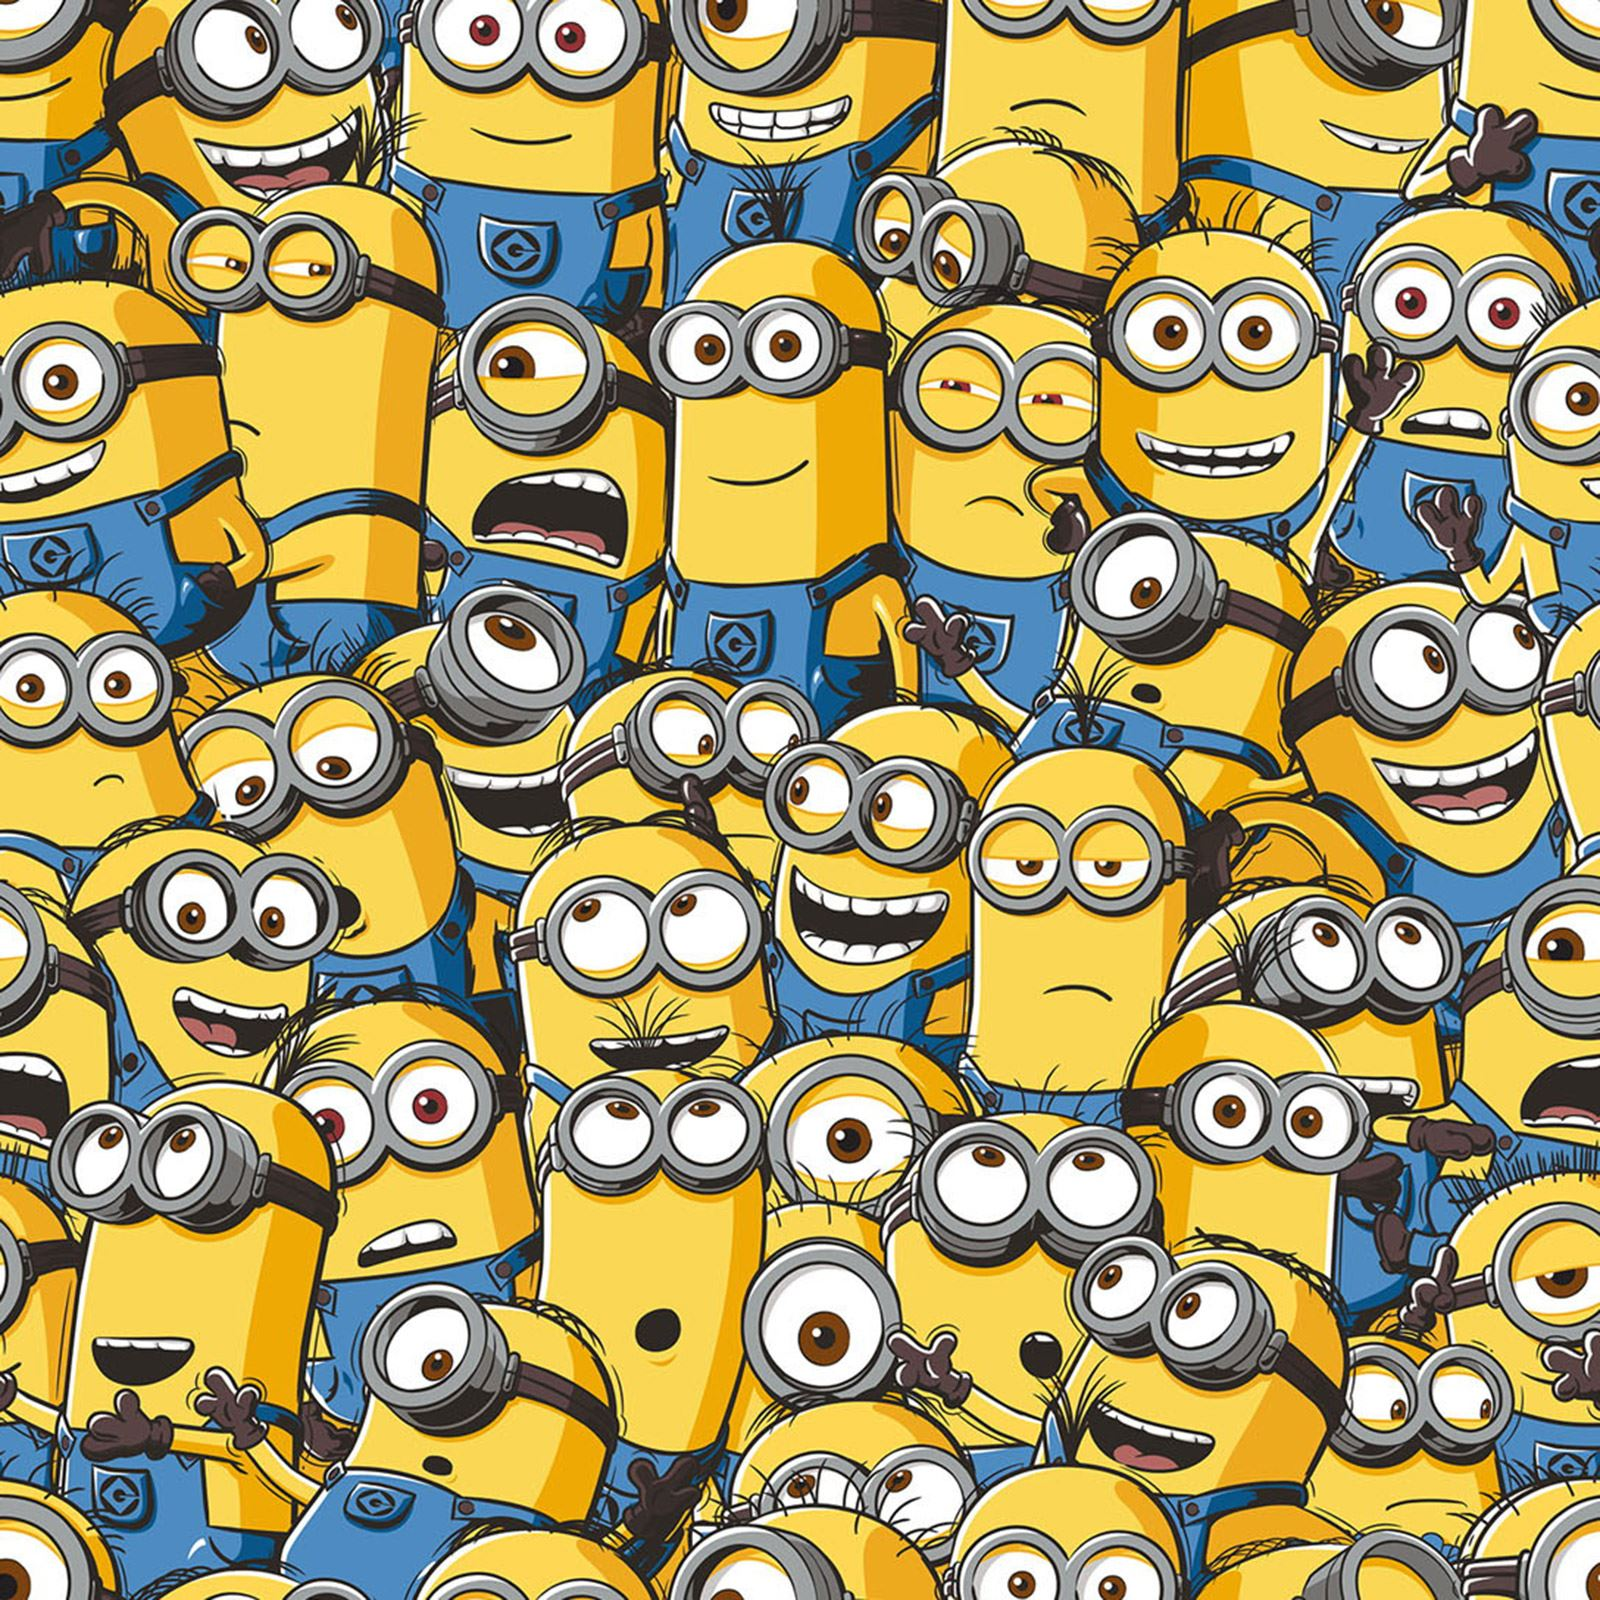 Despicable Me Minions Wallpaper Rolls 10m Official | eBay